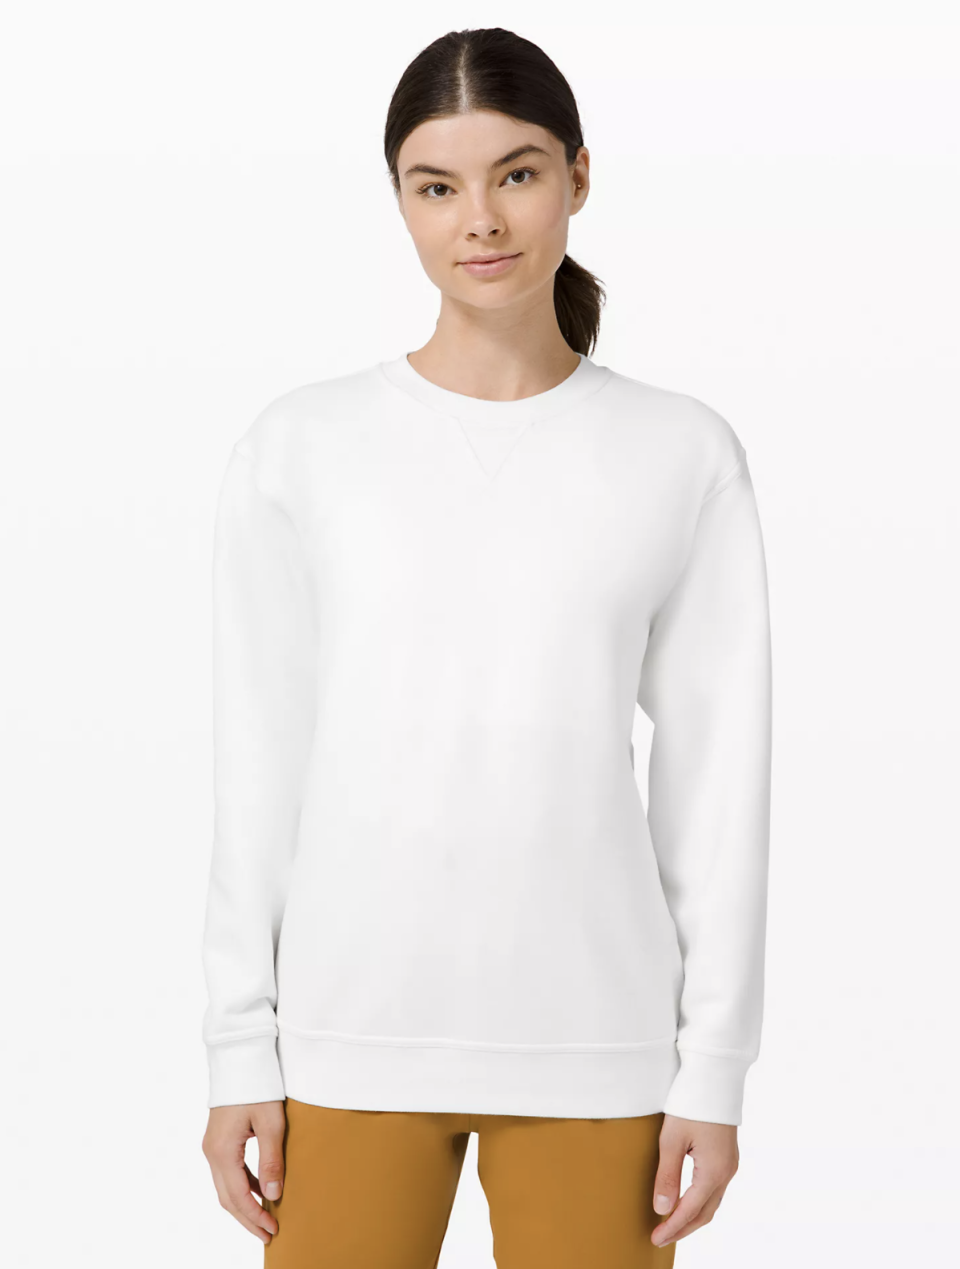 All Yours Crew Fleece - Lululemon, $69 (originally $98)